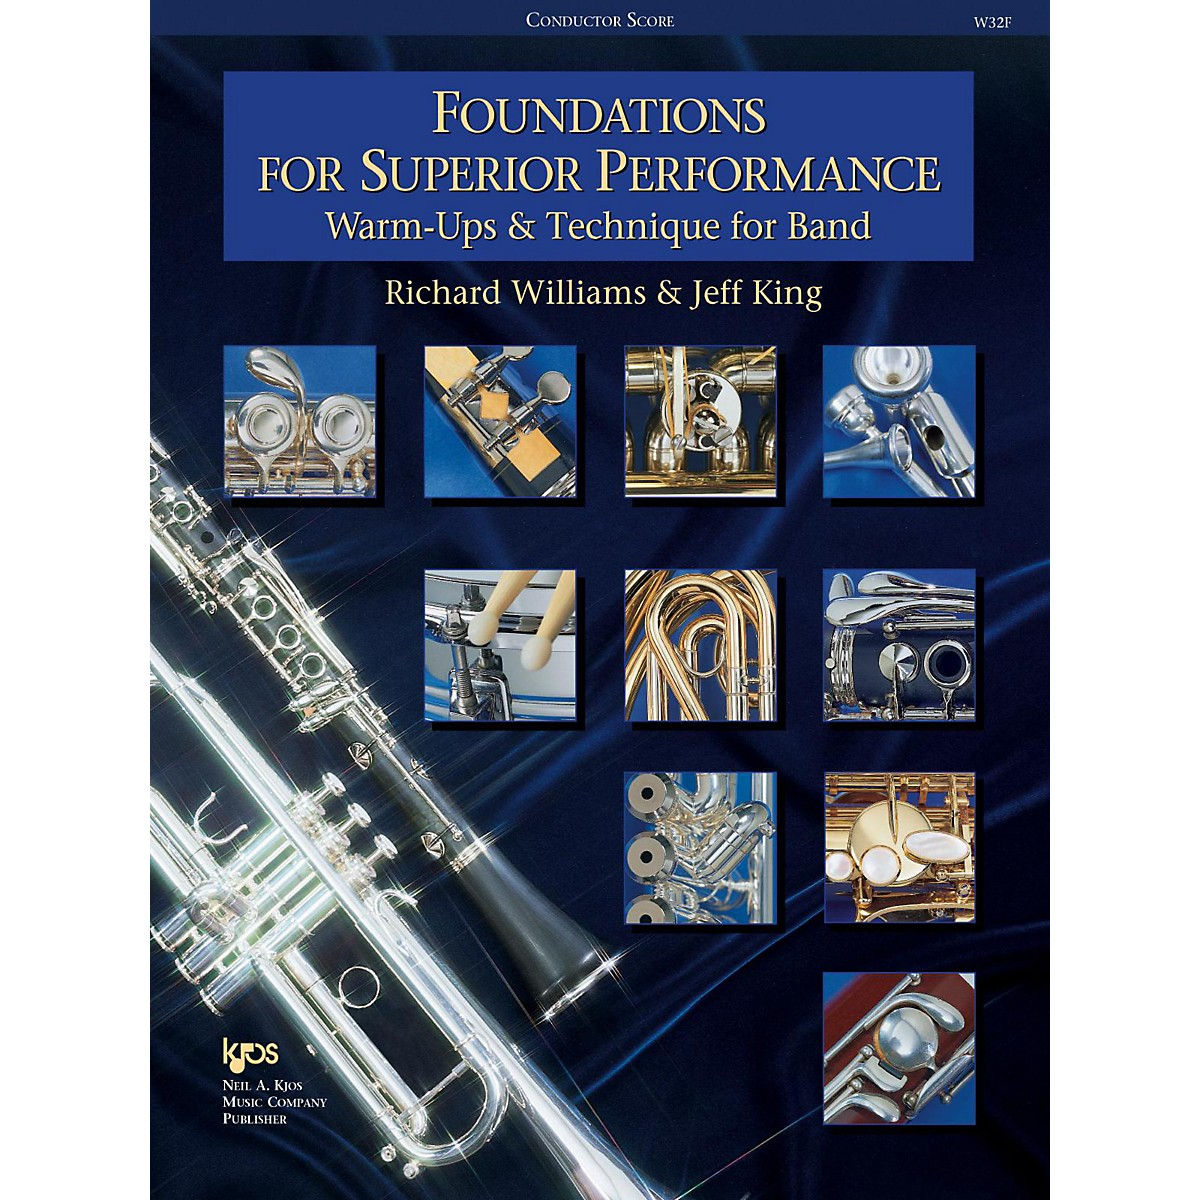 KJOS Foundations for Superior Performance Conductor Score